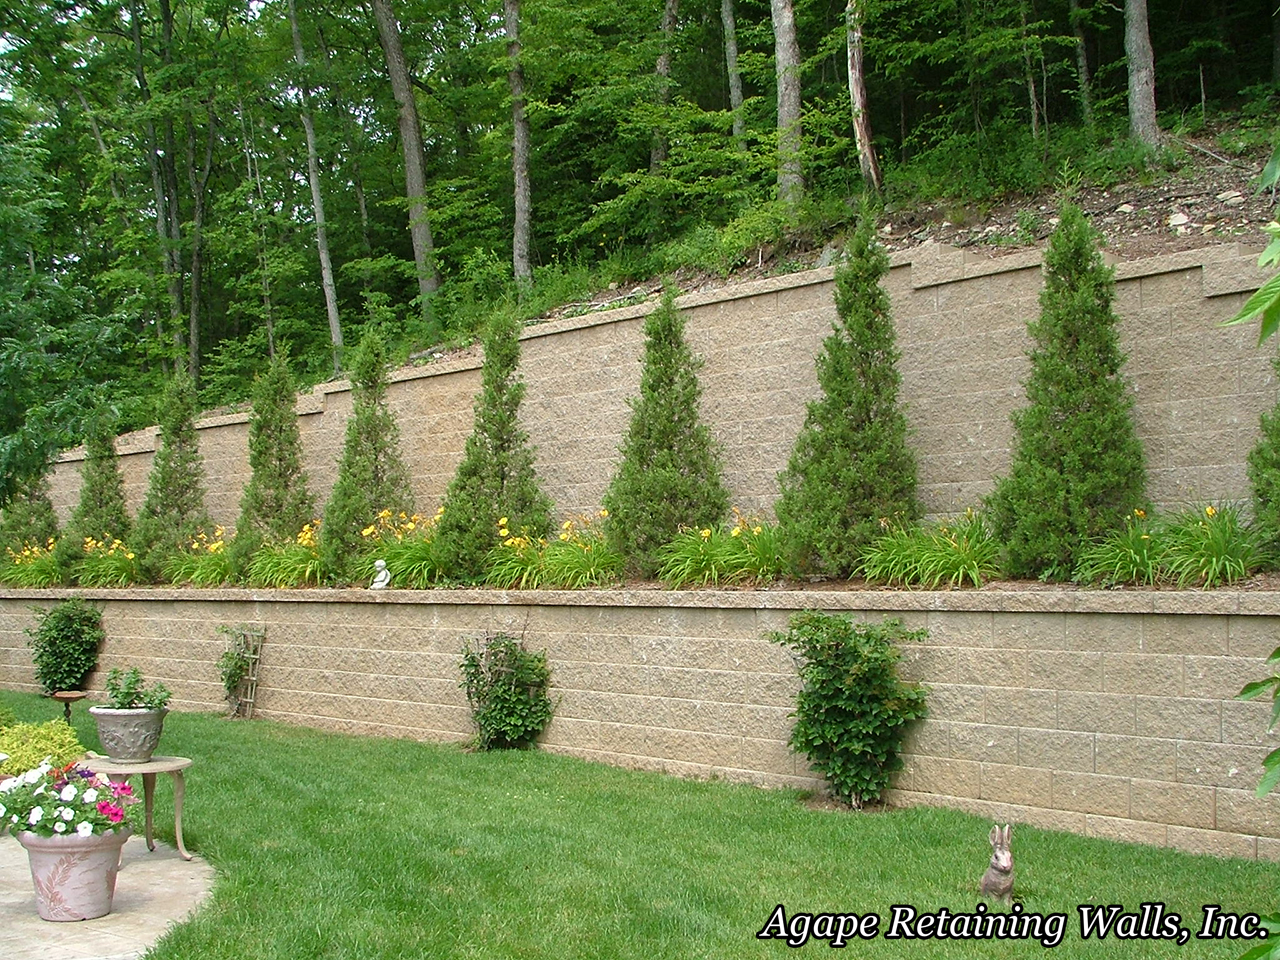 agape retaining walls inc terrace photo album 2 - Segmental Retaining Wall Design 2